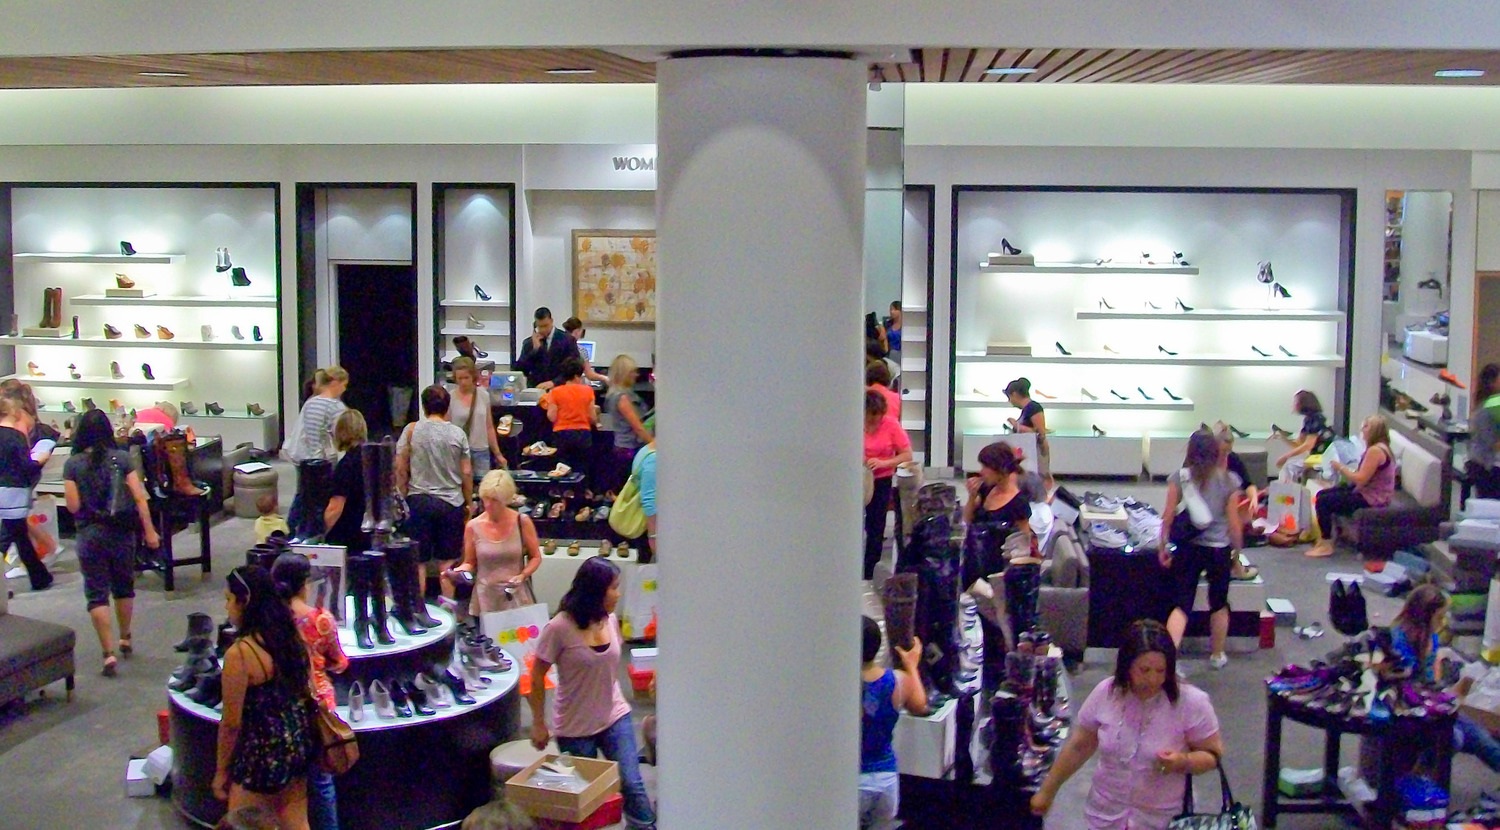 Nordstrom's shoe departments are very popular. Calgary's Nordstrom will feature three women's shoe departments. Photo:www.fitinfun.com